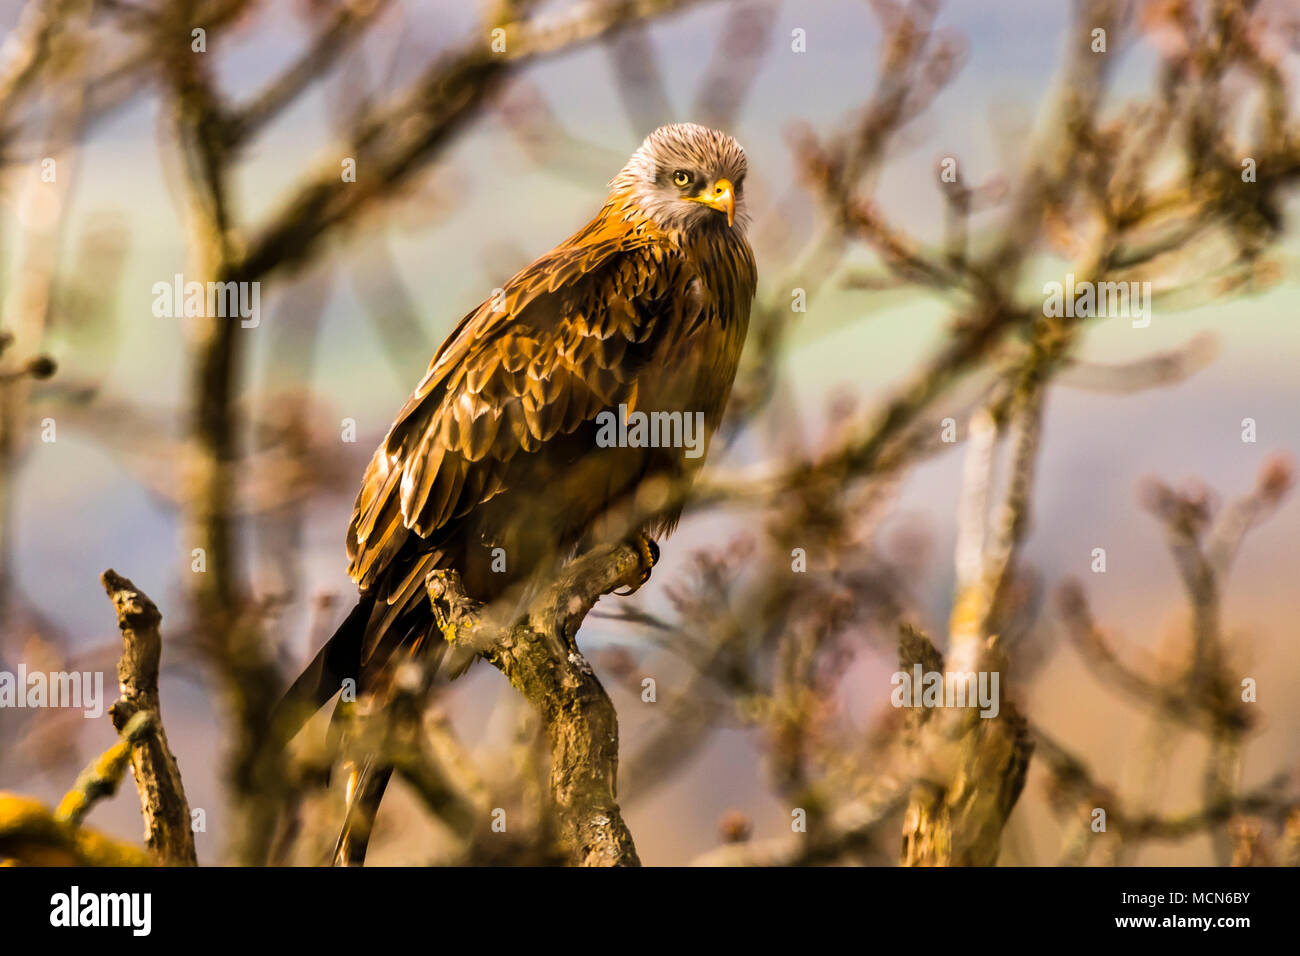 Fabulous Red Kite sitting in a tree near Cliveden, Buckinghamshire, UK - Stock Image